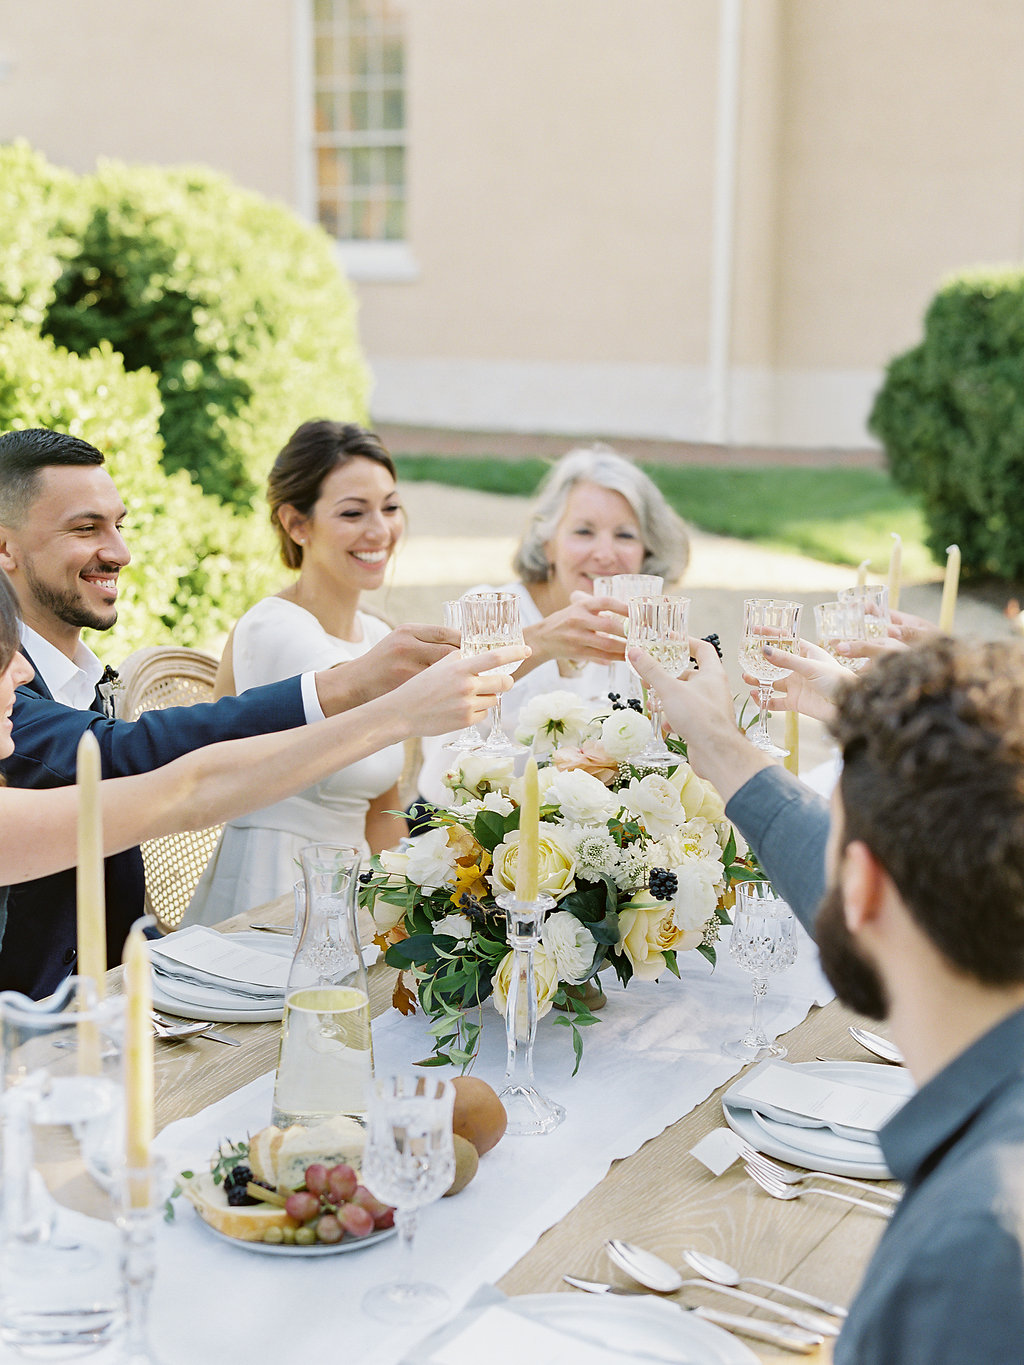 French Inspired Fall Wedding with Fine Art Destination Wedding Planner East Made Event Company and DC Film Photographer Vicki Grafton Photography at Tudor Place in Washington DC-89.jpg